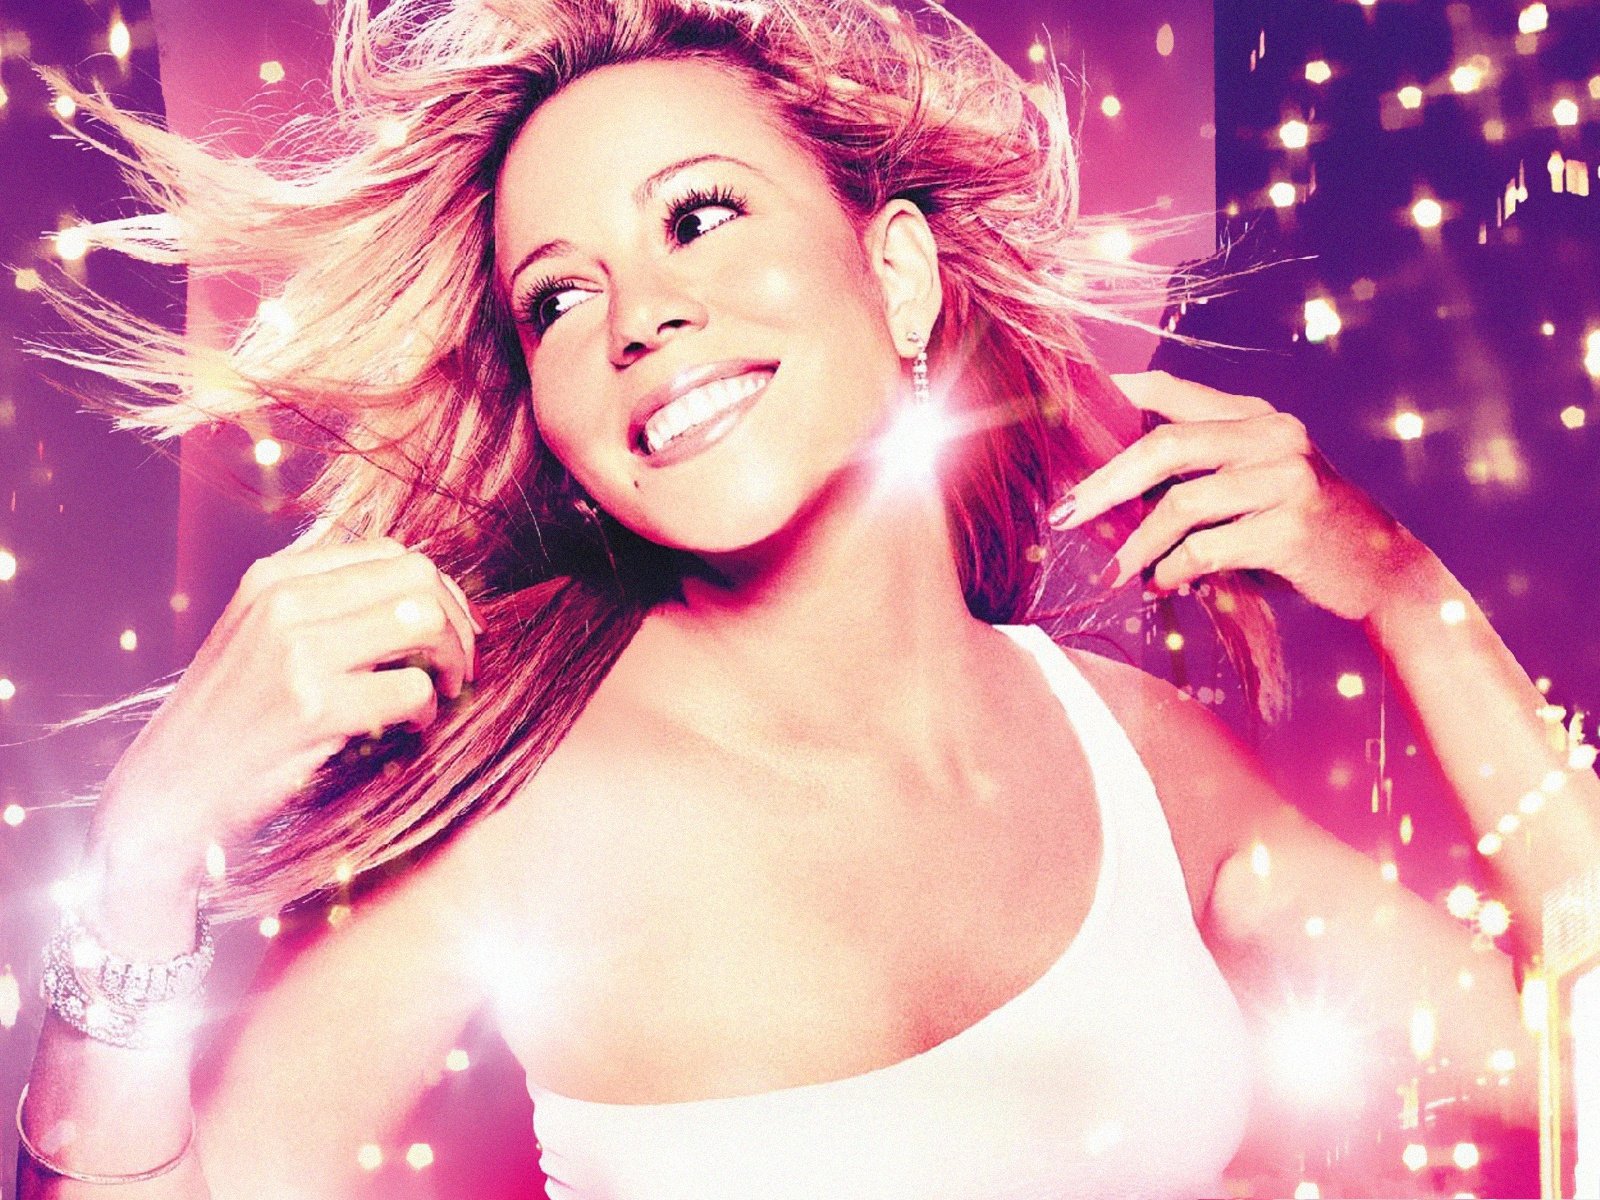 click to free download the wallpaper--Shinning Mariah Carey, When She Sings, She Glows, What a Beauty! 1600X1200 free wallpaper download